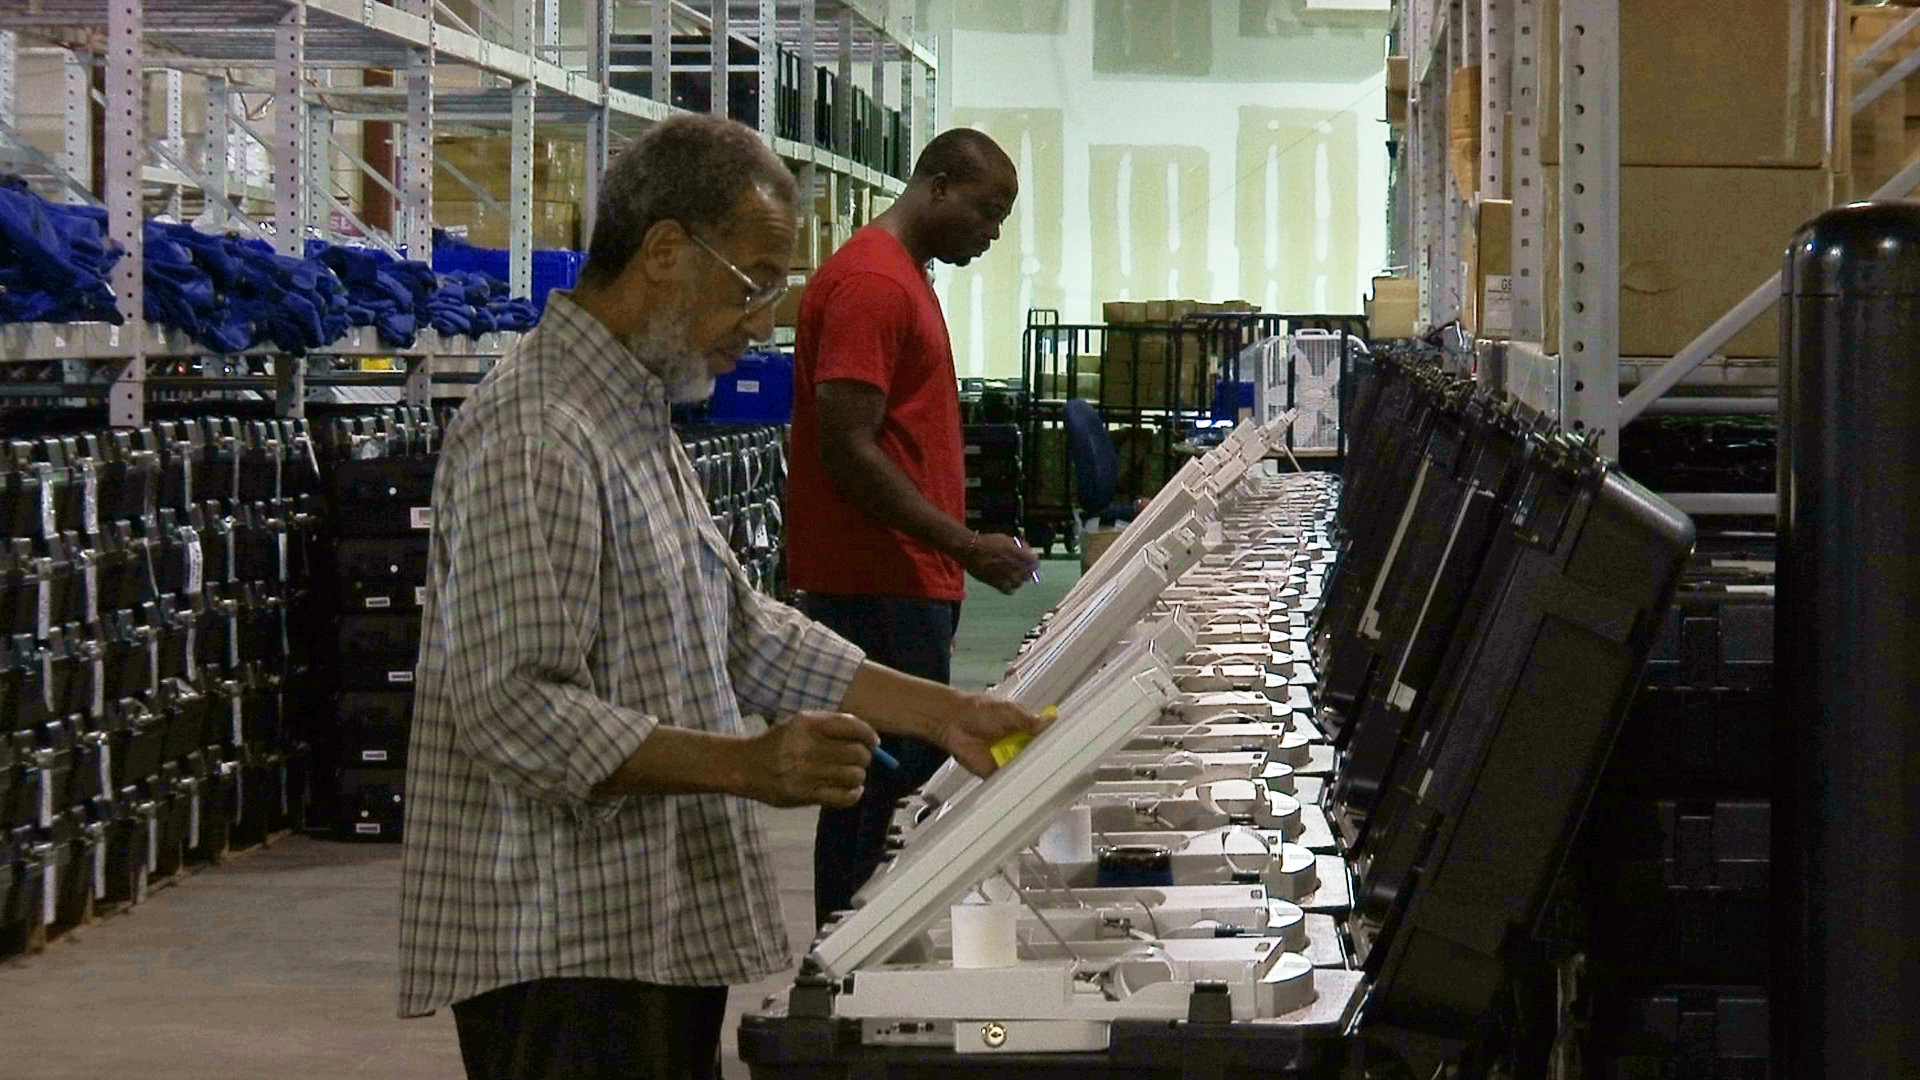 This Sept. 22, 2016 file photo shows employees of the Fulton County Election Preparation Center in Atlanta test electronic voting machines. A bill in the House would establish directives for states to harden election cybersecurity, auditing and means to pair votes cast electronically with a visible paper record. (Alex Sanz/AP)